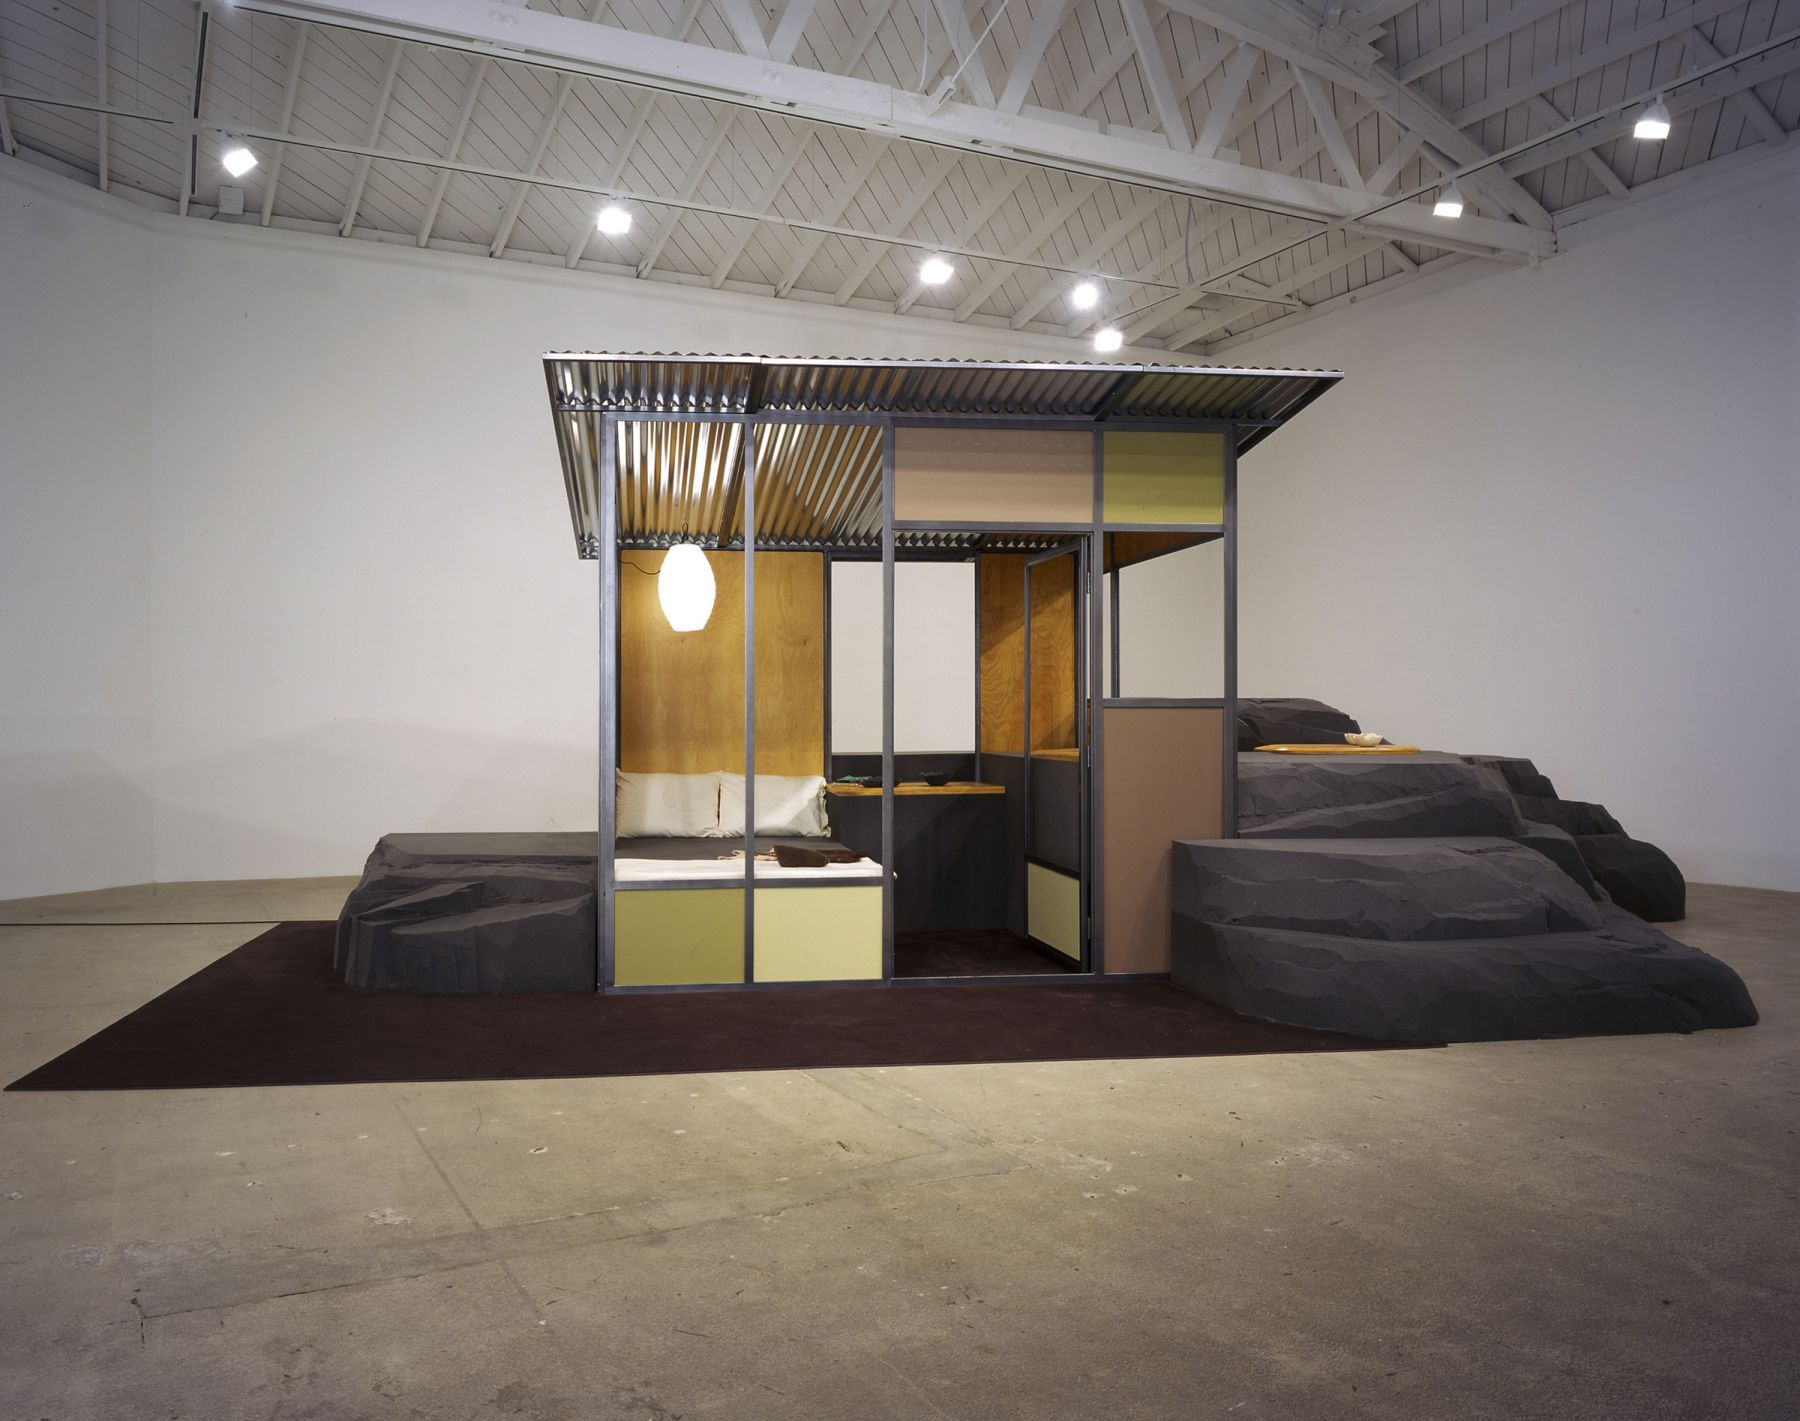 Andrea Zittel, A-Z Homestead Unit from A-Z West with Raugh Furniture 2001 - 2004